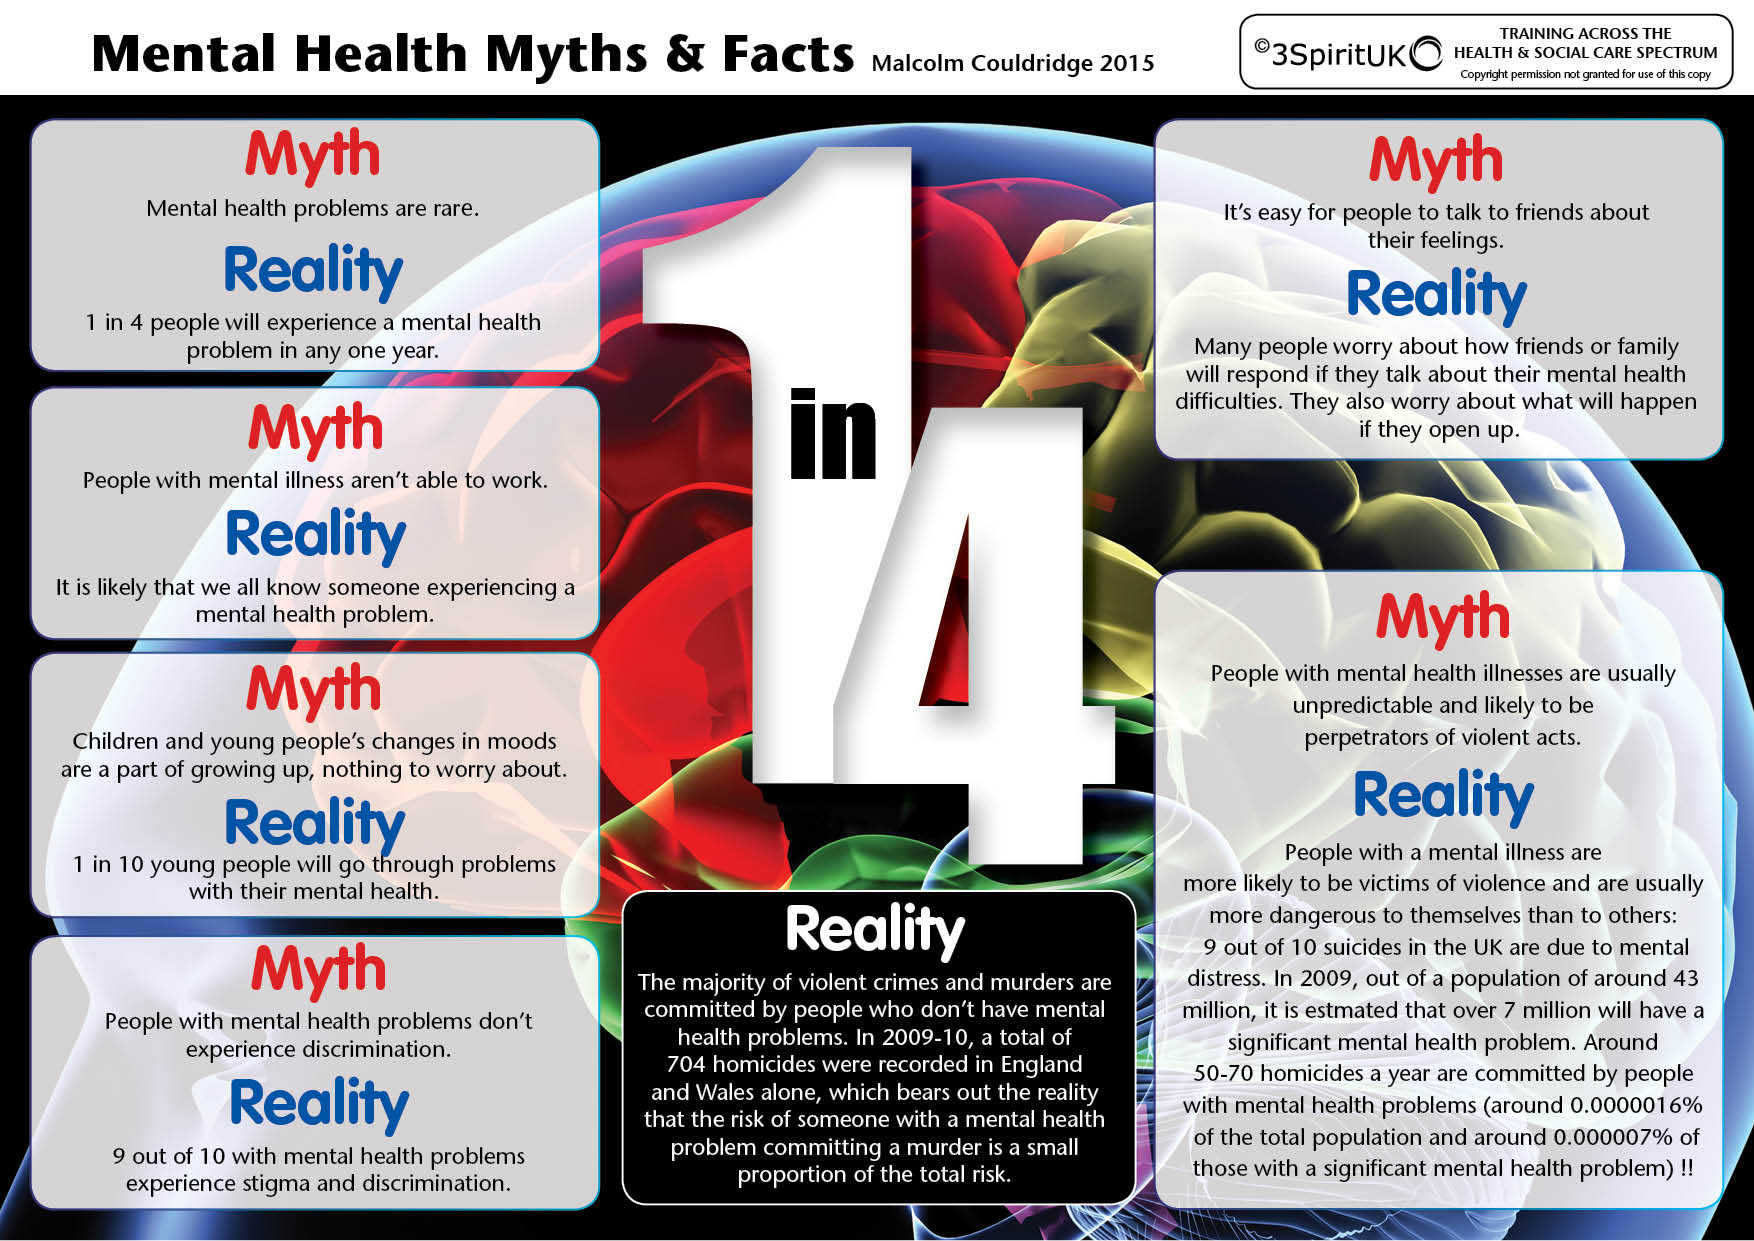 Mental Health Myths and Facts